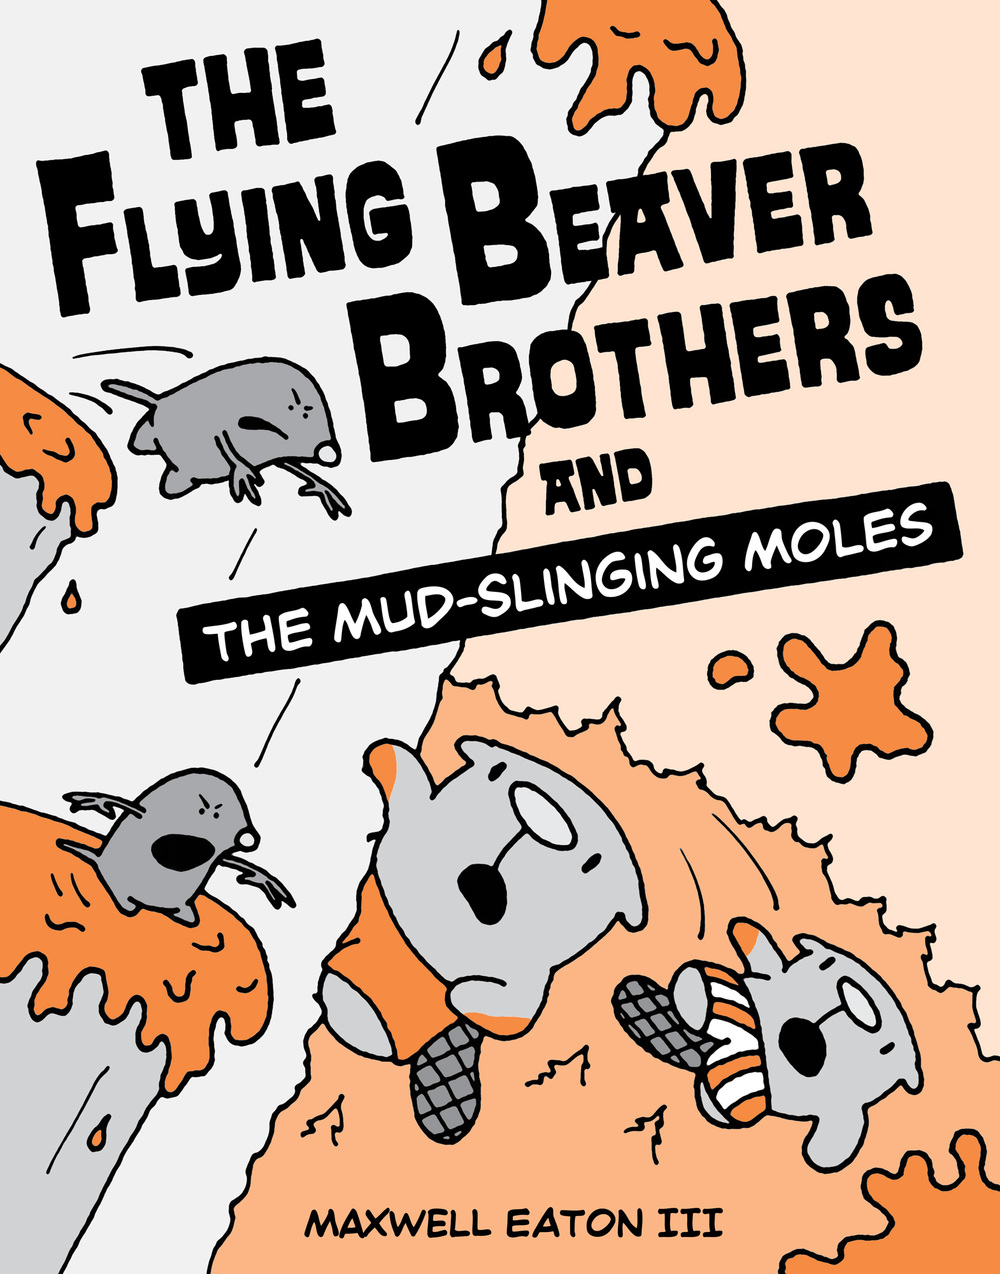 Maxwell-Eaton-III-The-Flying-Beaver-Brothers-and-the-Mud-Slinging-Moles.jpg